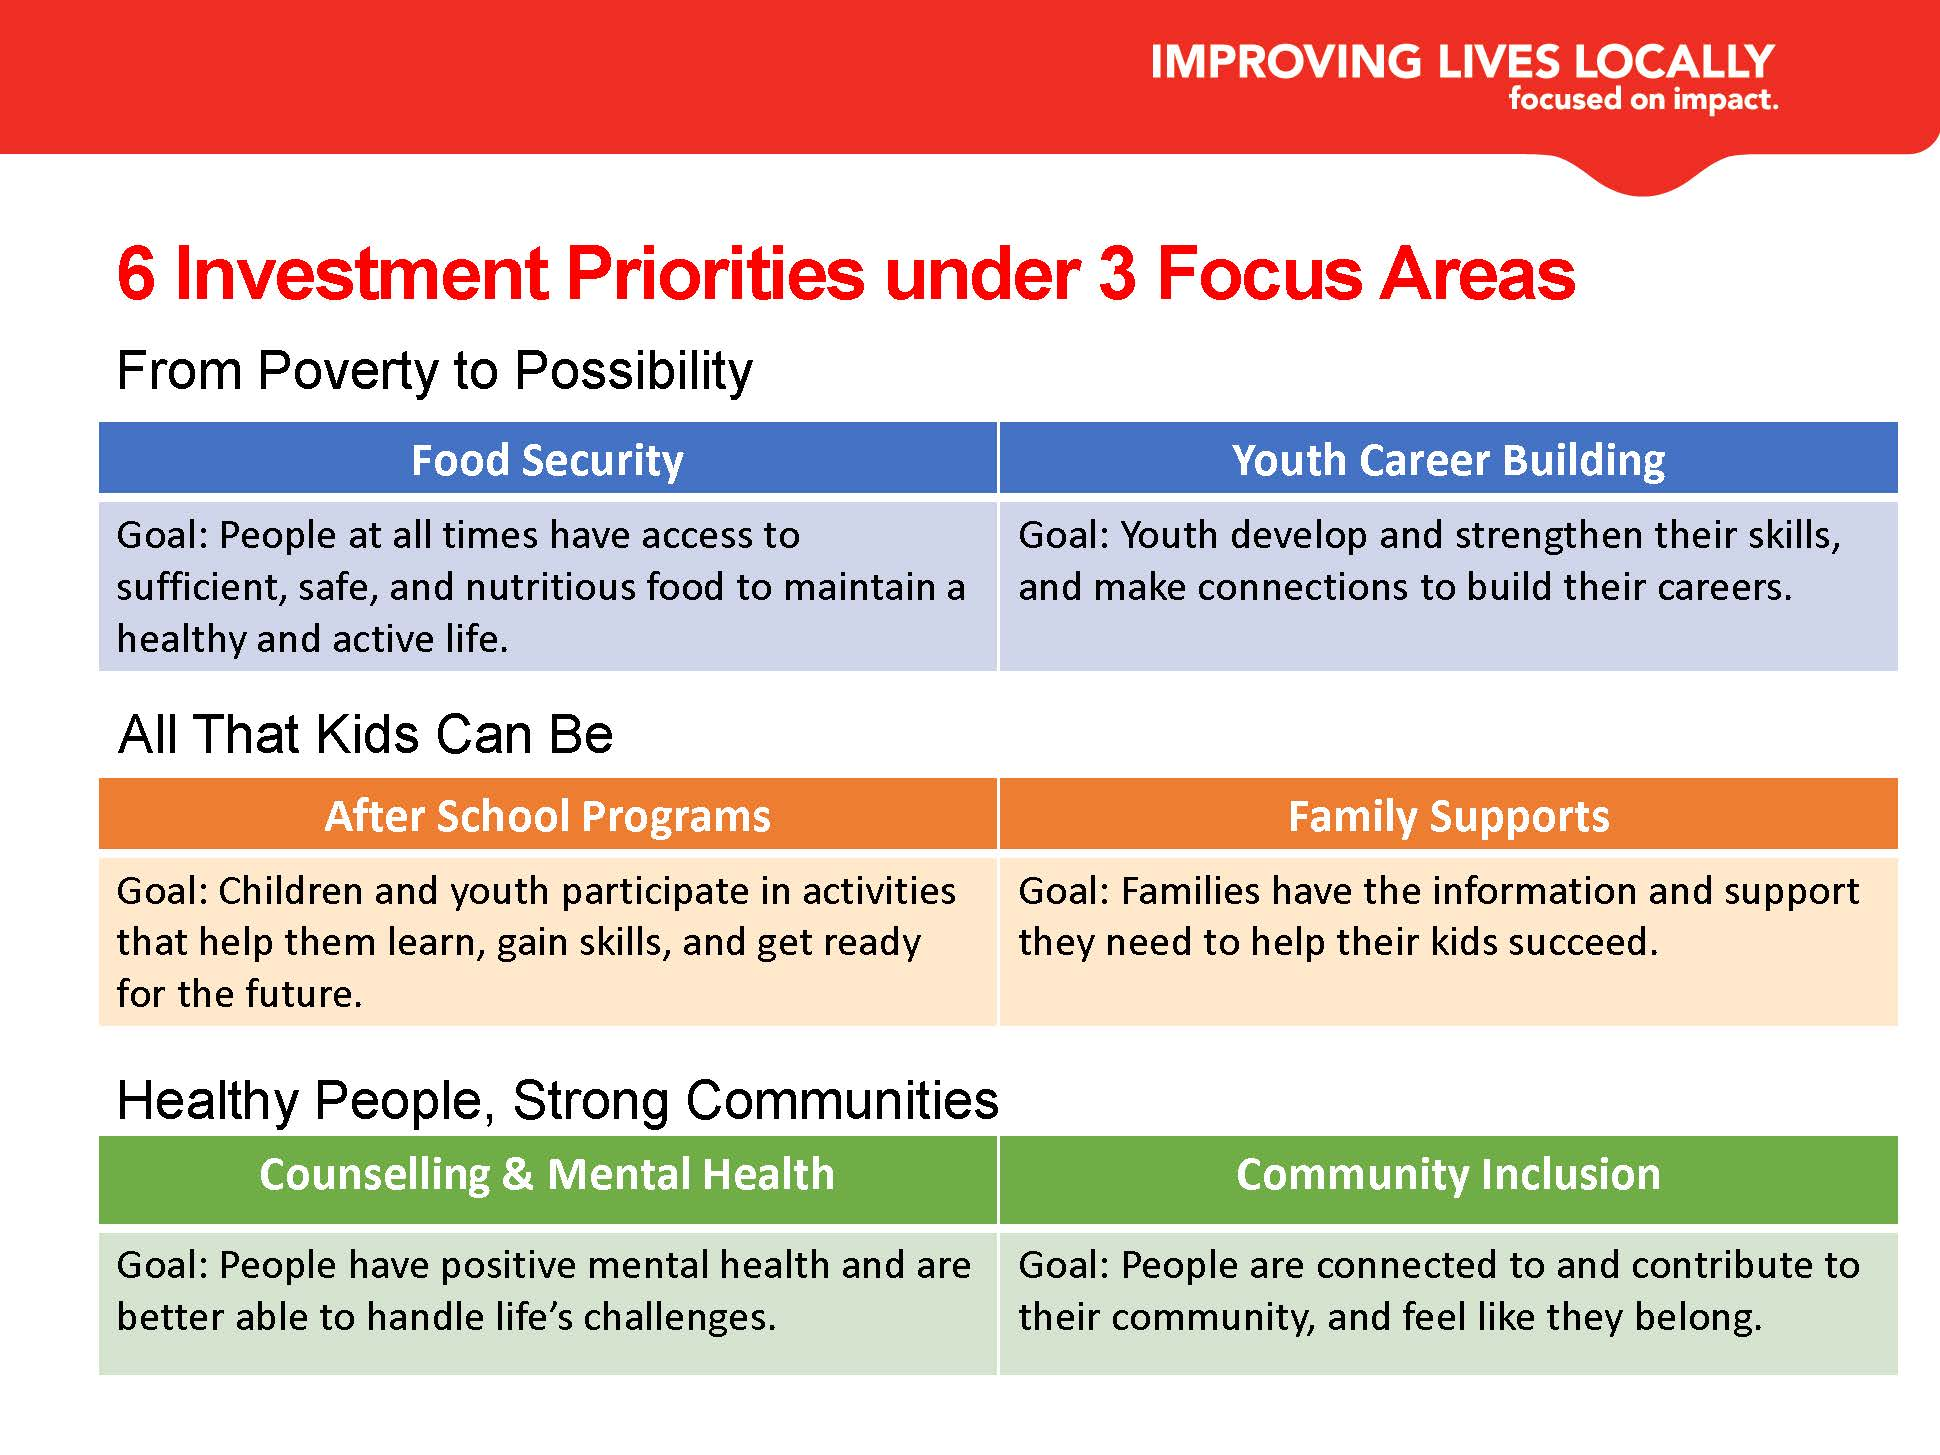 Description of Focus Areas and Priorities